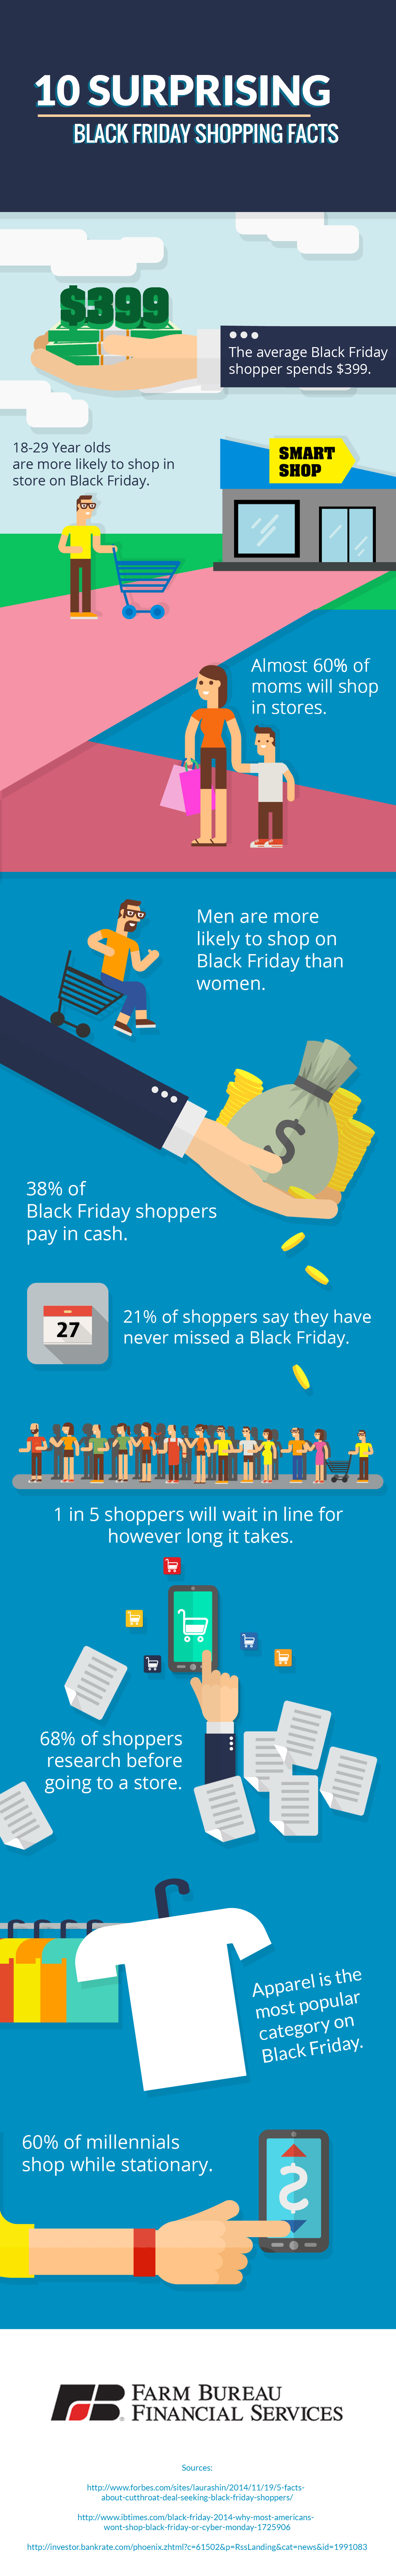 Black-Friday-Facts-sourced